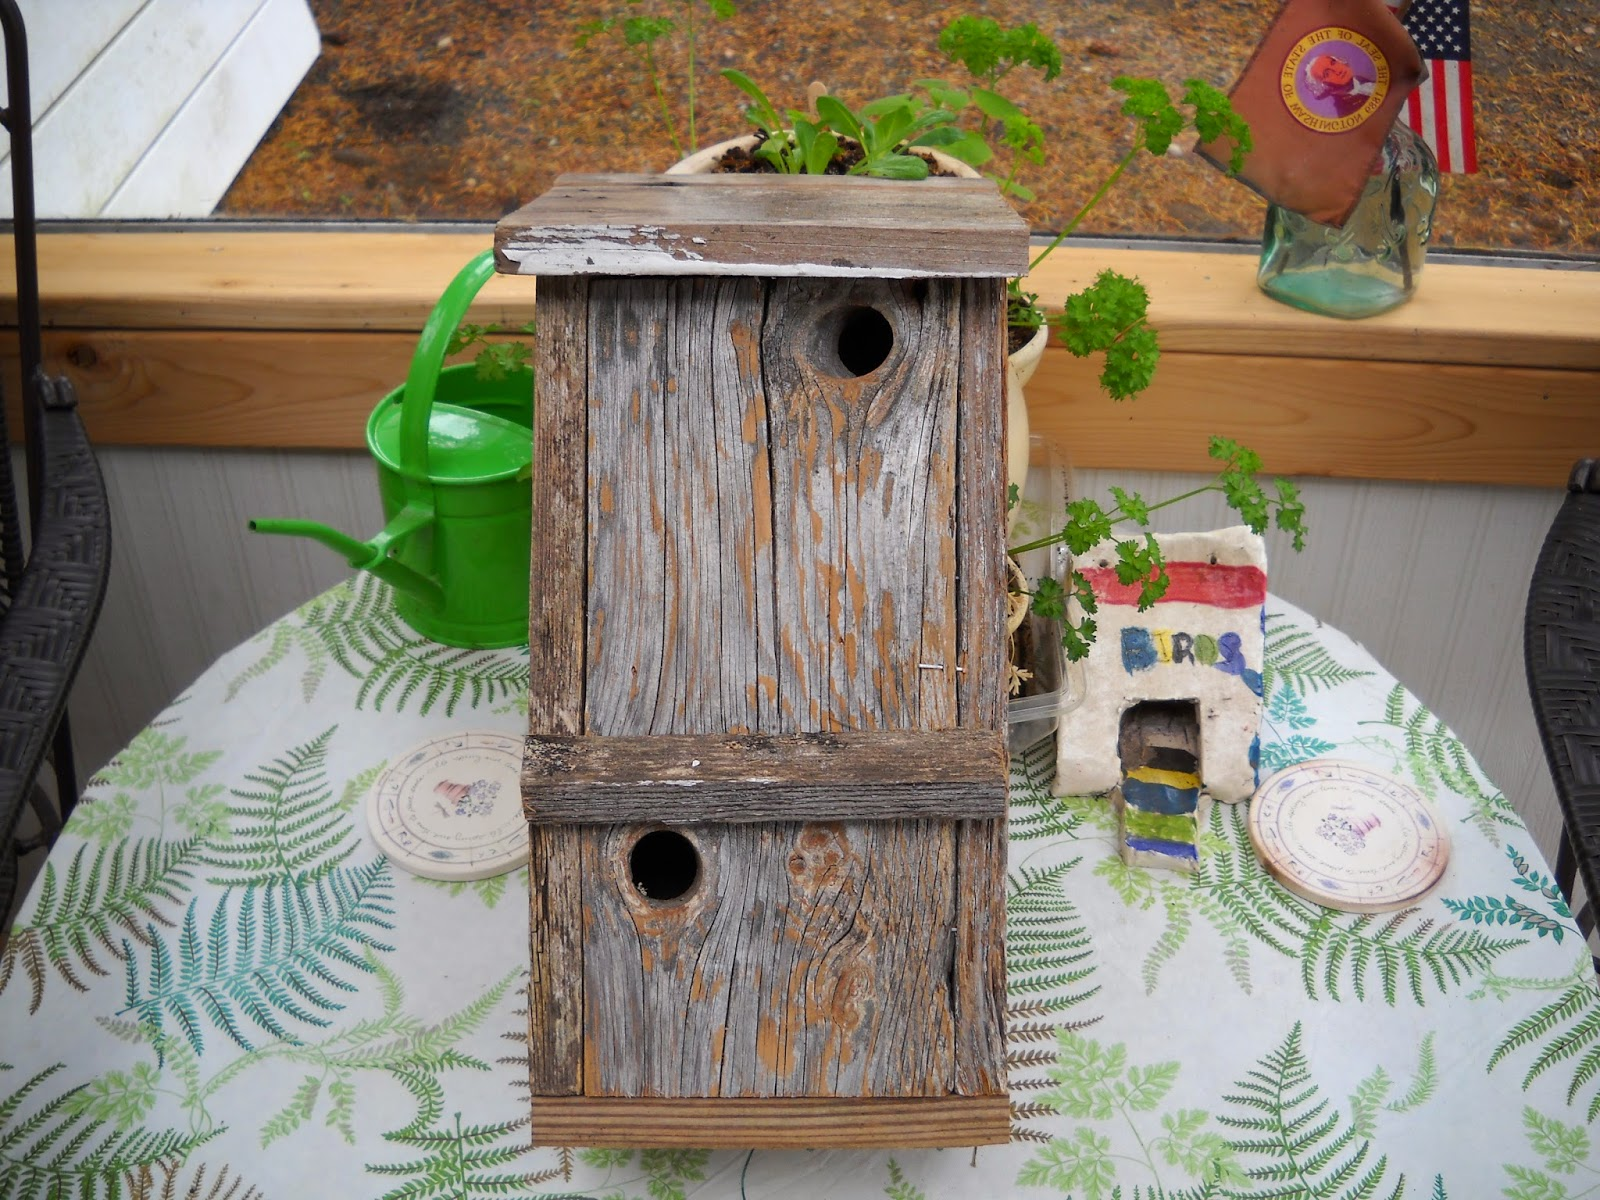 Unique Planters For Sale Part - 17: RUSTIC BARN WOOD BIRDHOUSE: $20.00 This Is A Unique, One Of A Kind Bird  House That Is Made Of Old Barn Wood U0026 Has 2 Knot Holes For Openings.